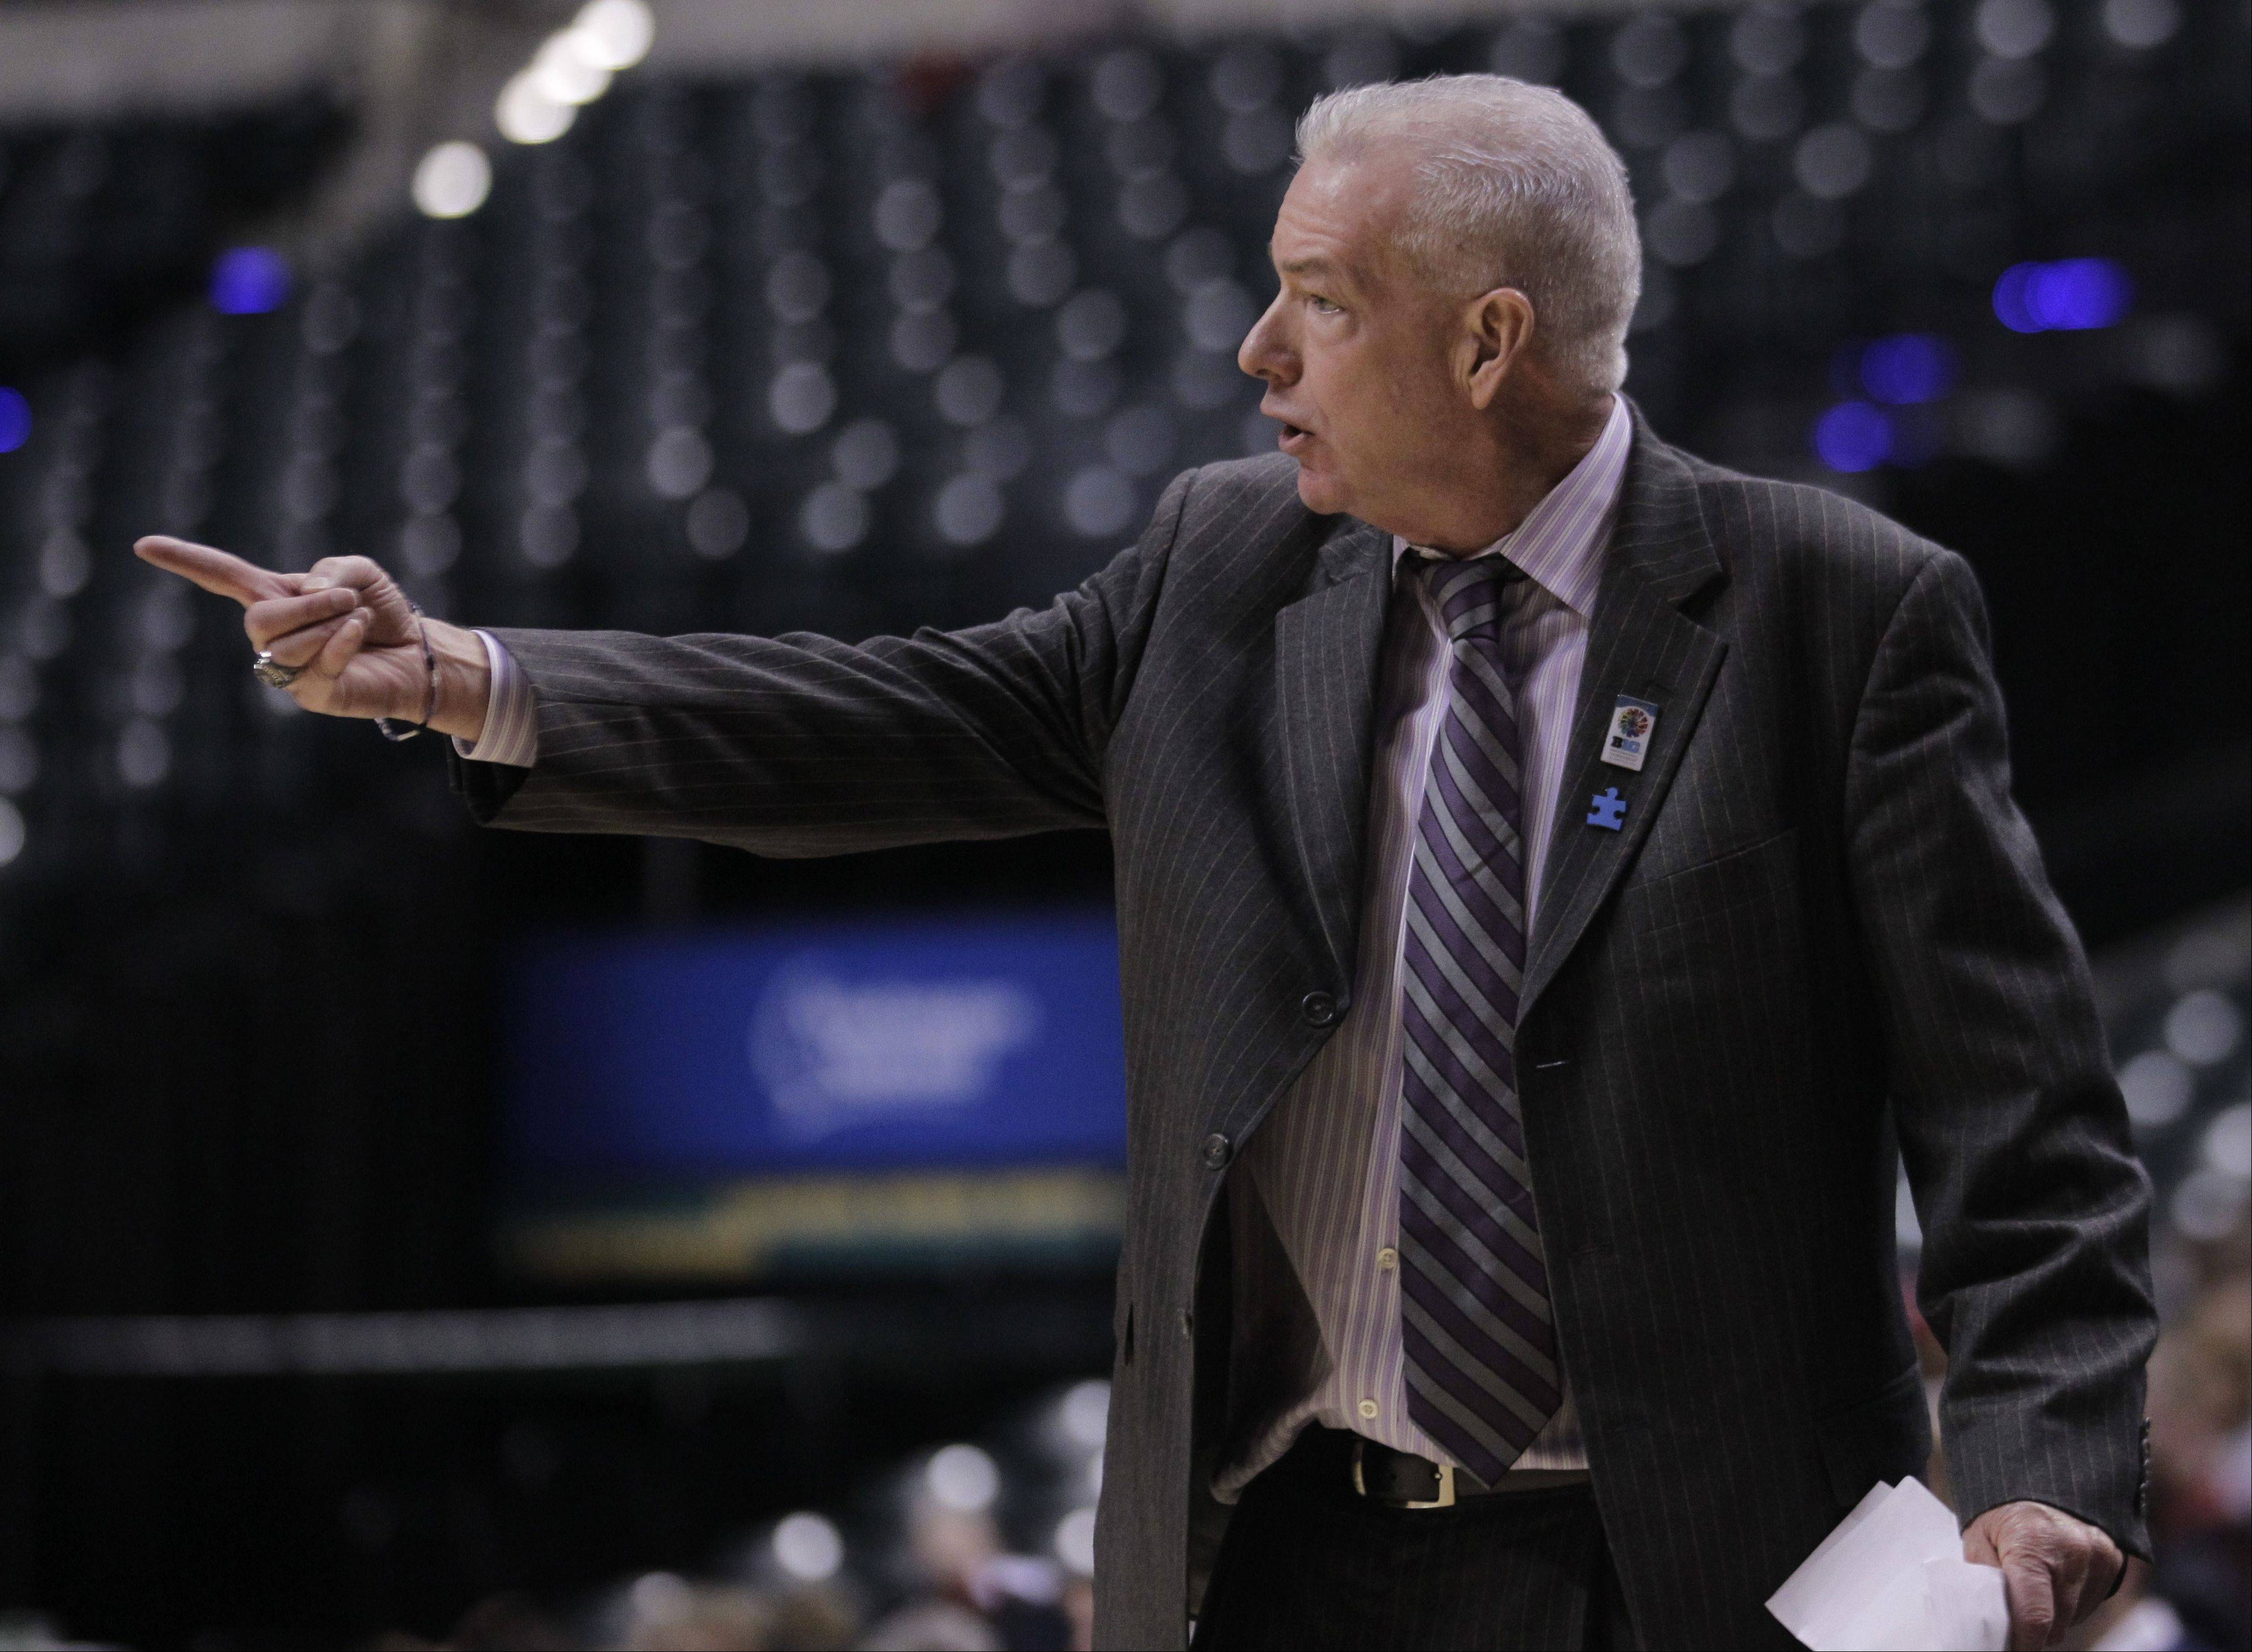 Northwestern women's basketball coach Joe McKeown has agreed to a contract extension through the 2017 with the Wildcats.